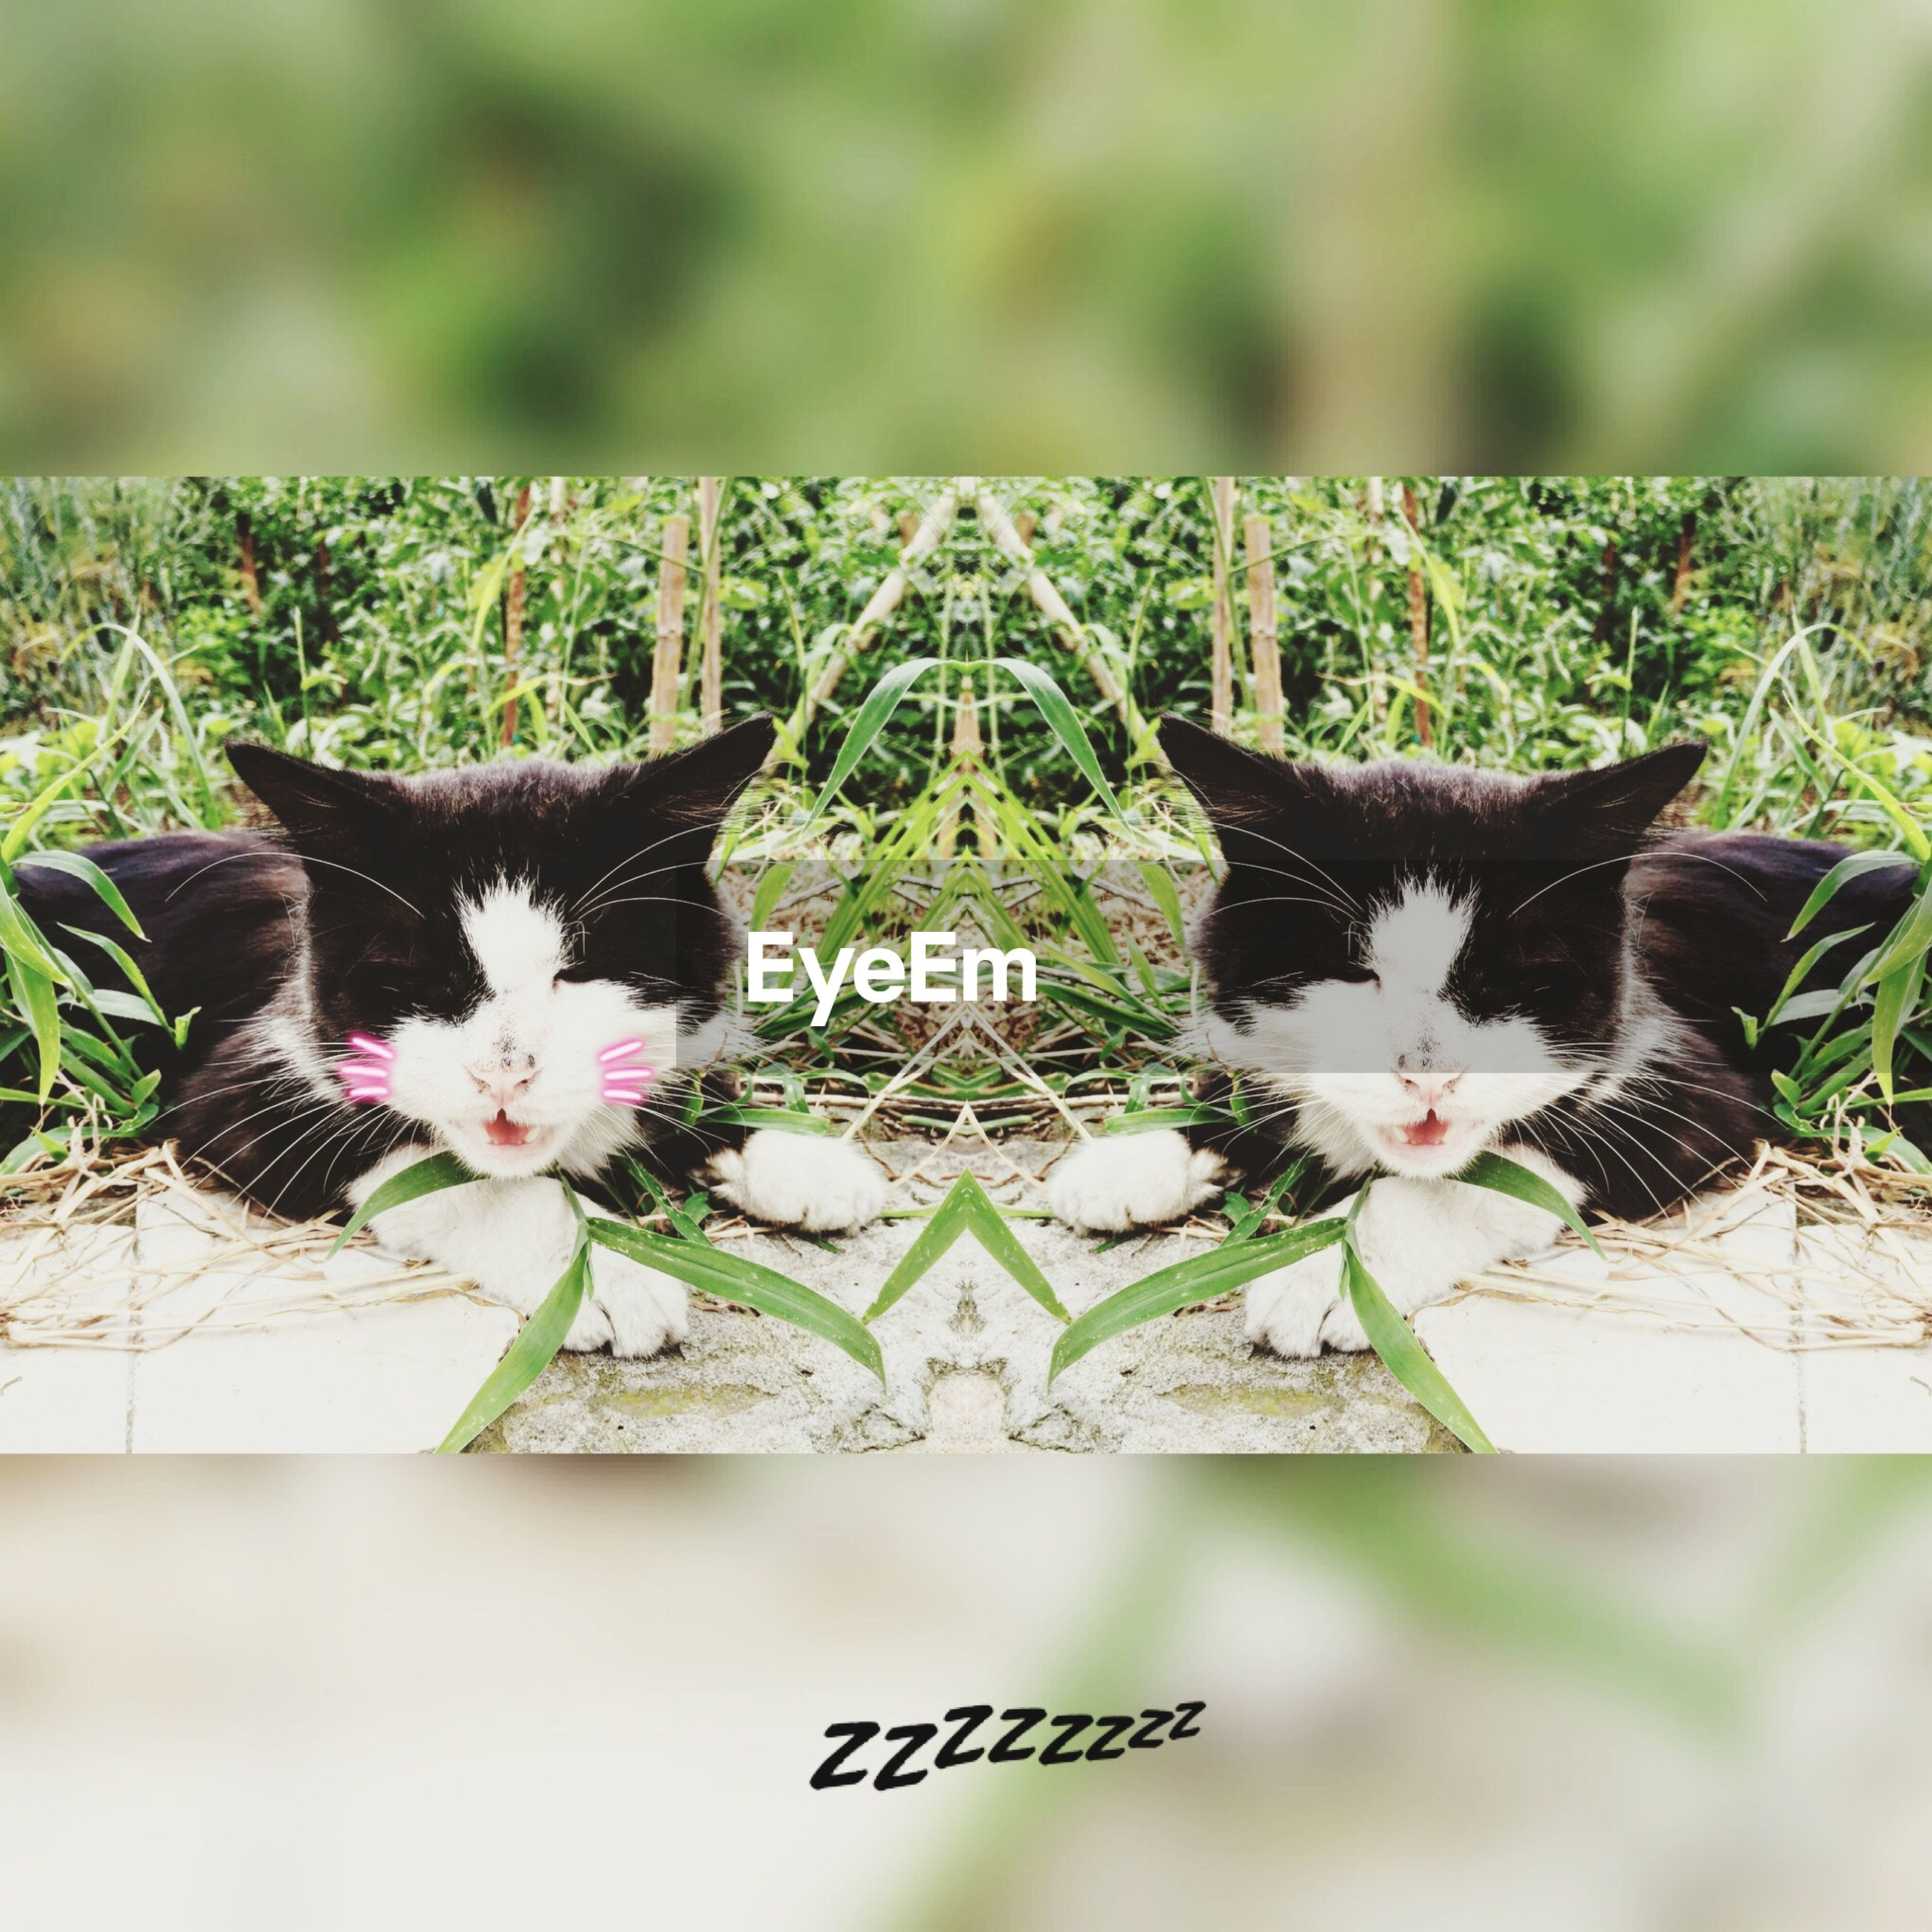 domestic cat, cat, domestic animals, pets, animal themes, feline, mammal, portrait, whisker, relaxation, alertness, staring, close-up, no people, kitten, plant, selective focus, young animal, nature, lying down, day, focus on foreground, grass, cute, resting, black color, green color